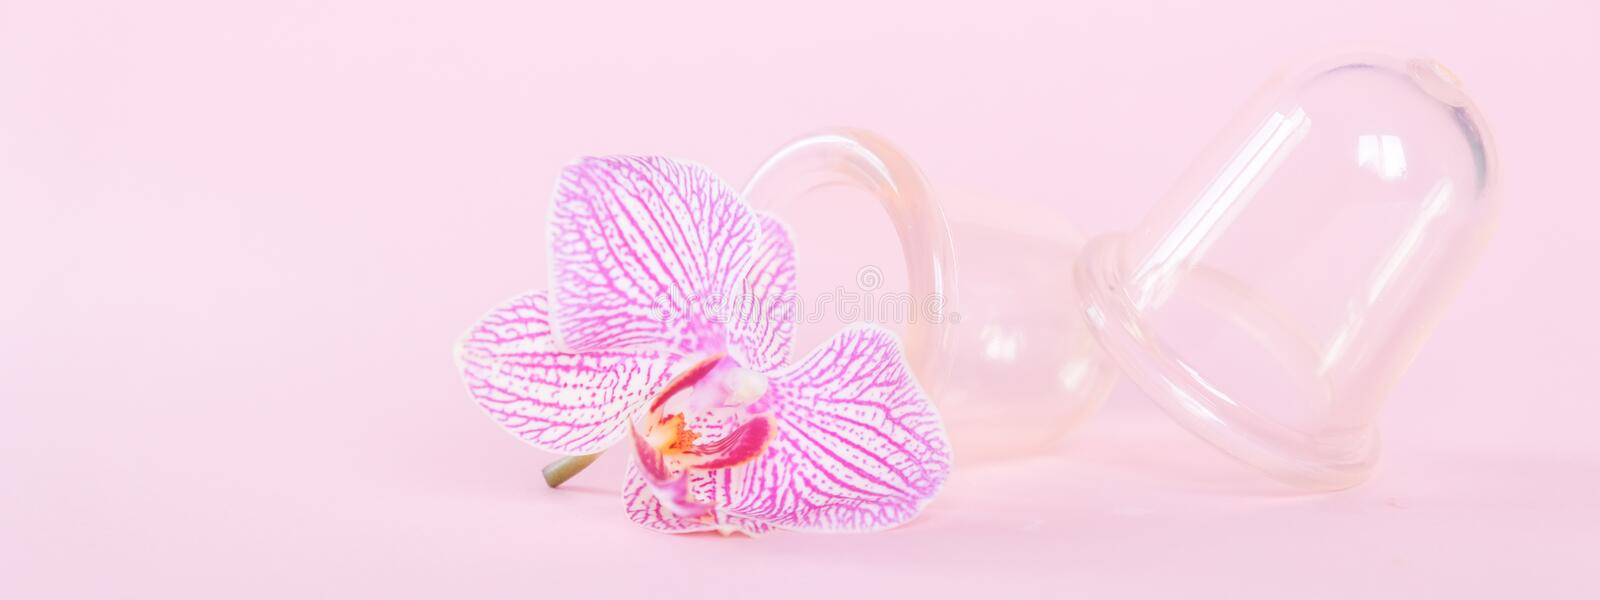 Vacuum cans for body on pink background. Rubber equipment for anti cellulite massage. Do it yourself manual slimming lymphatic drainage and anticellulite stock images